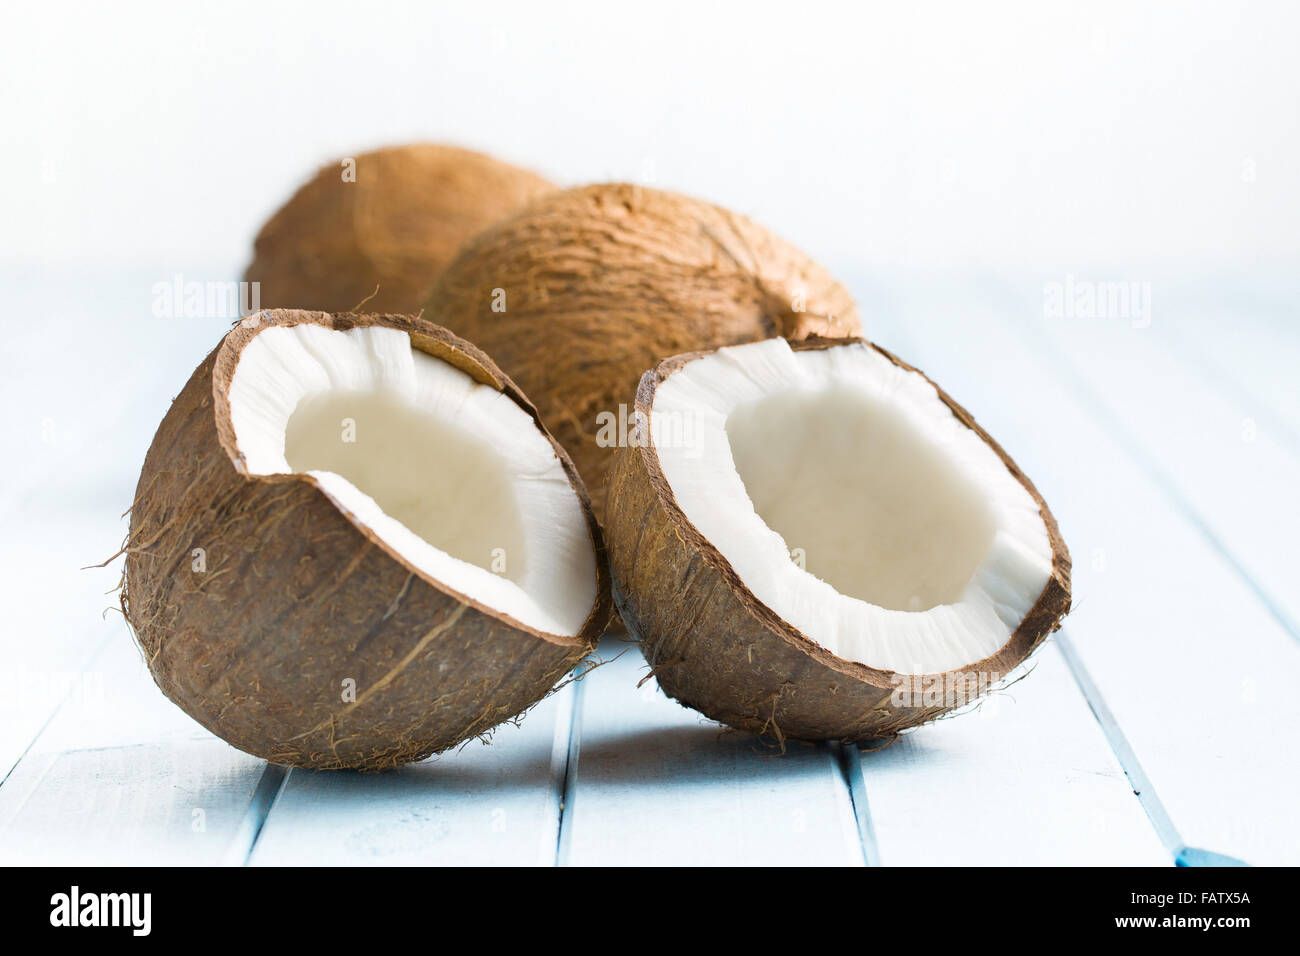 halved coconut on kitchen table - Stock Image